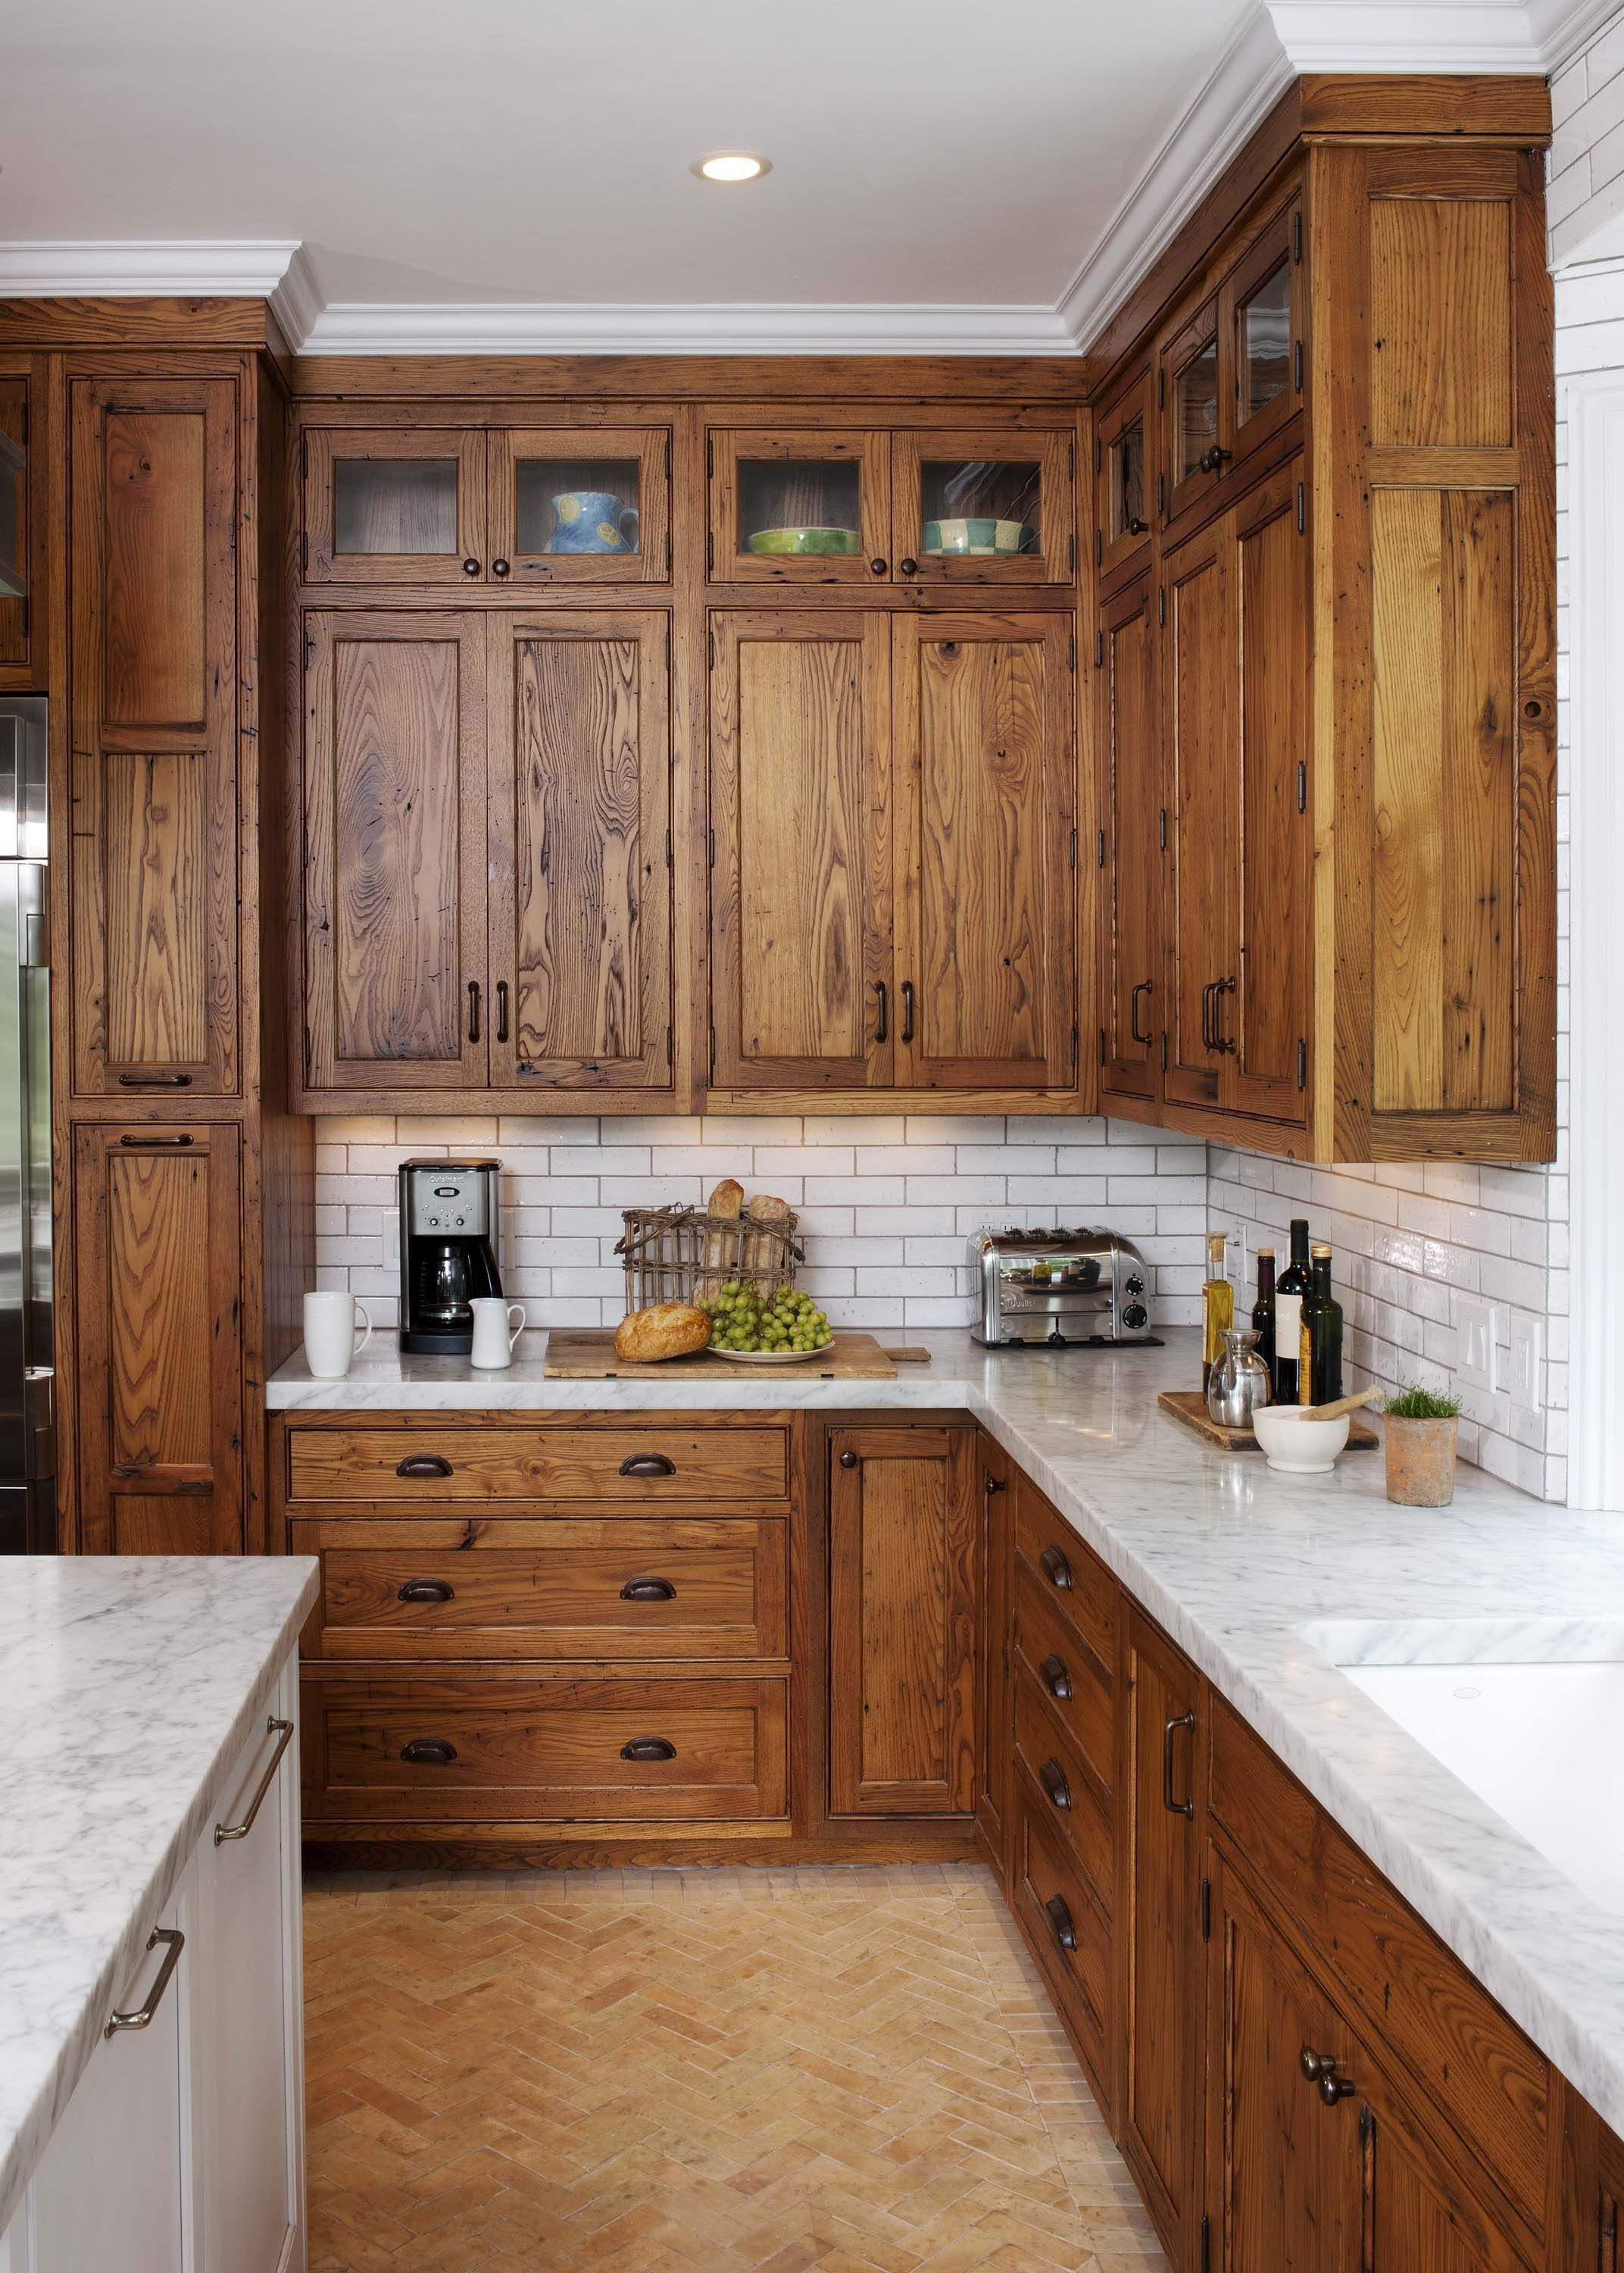 Wormy Maple Kitchen Cabinets Awesome Reclaimed Chestnut I Will Be Kitchen Cabinet Design Rustic Kitchen Cabinets Rustic Kitchen